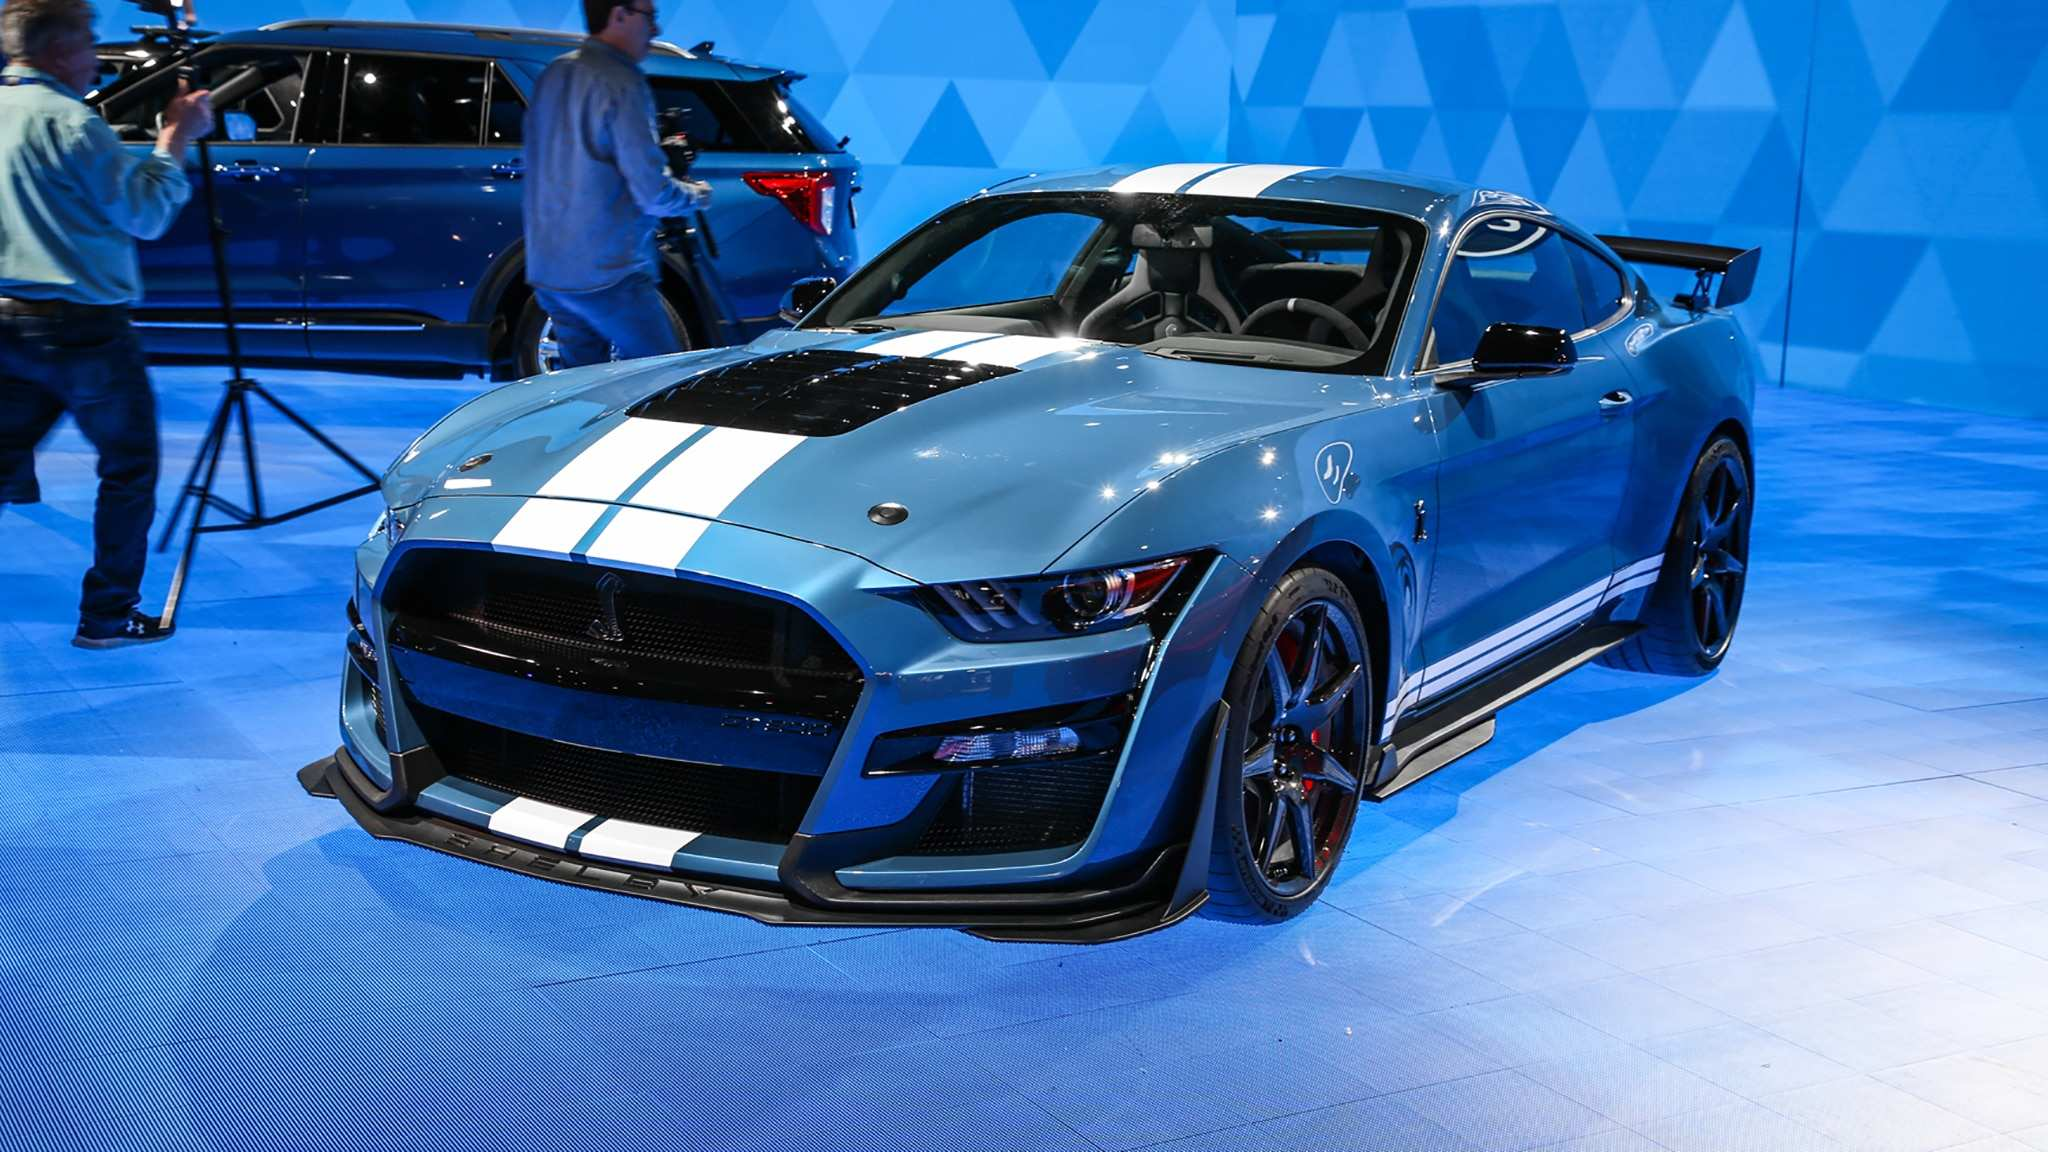 50 A 2020 Ford Mustang Shelby Gt500 Wallpaper